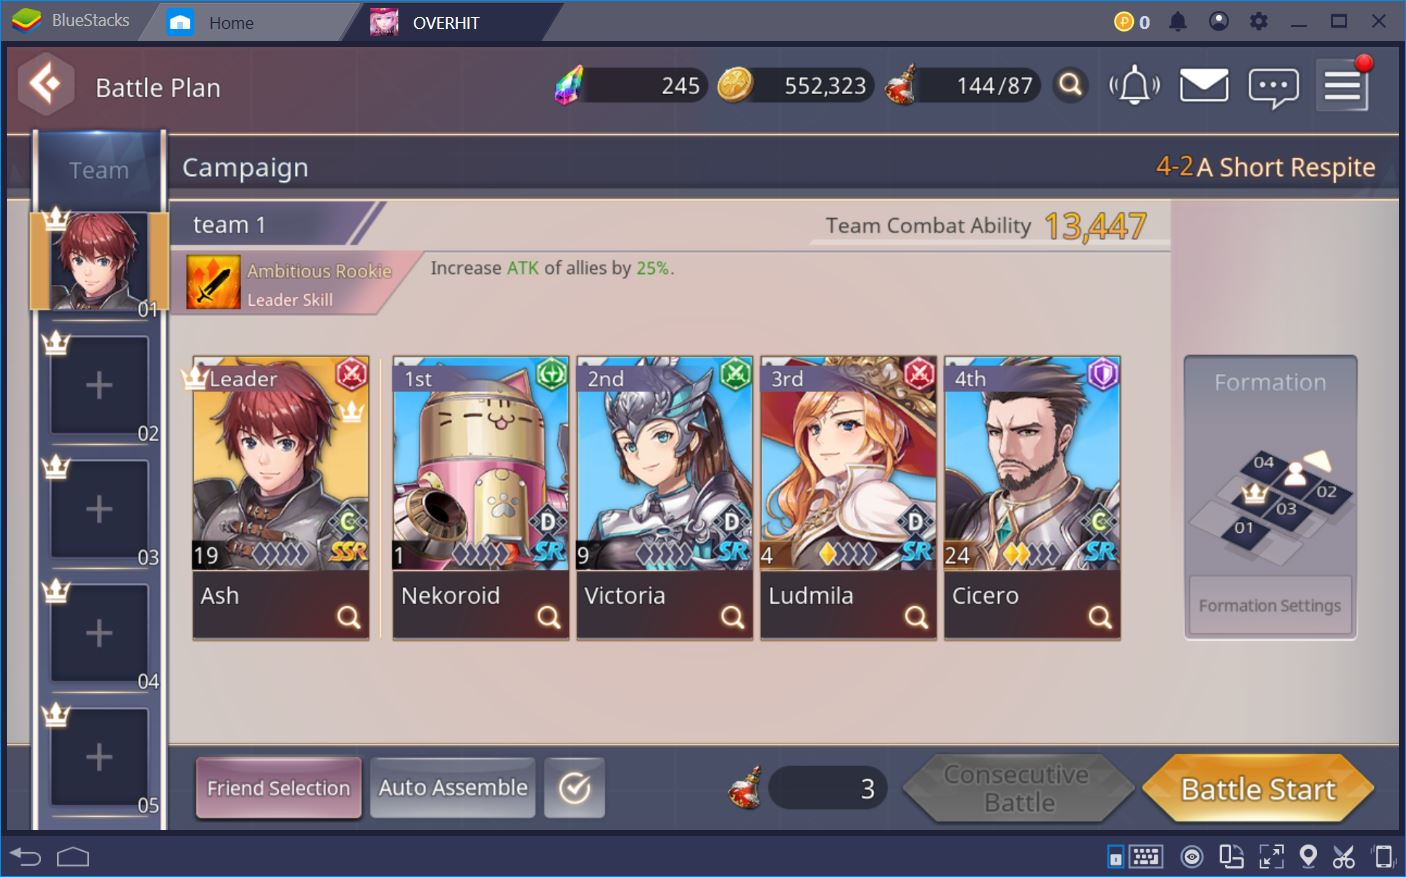 Overhit: The Best Free Team to Blast through All Stages | BlueStacks